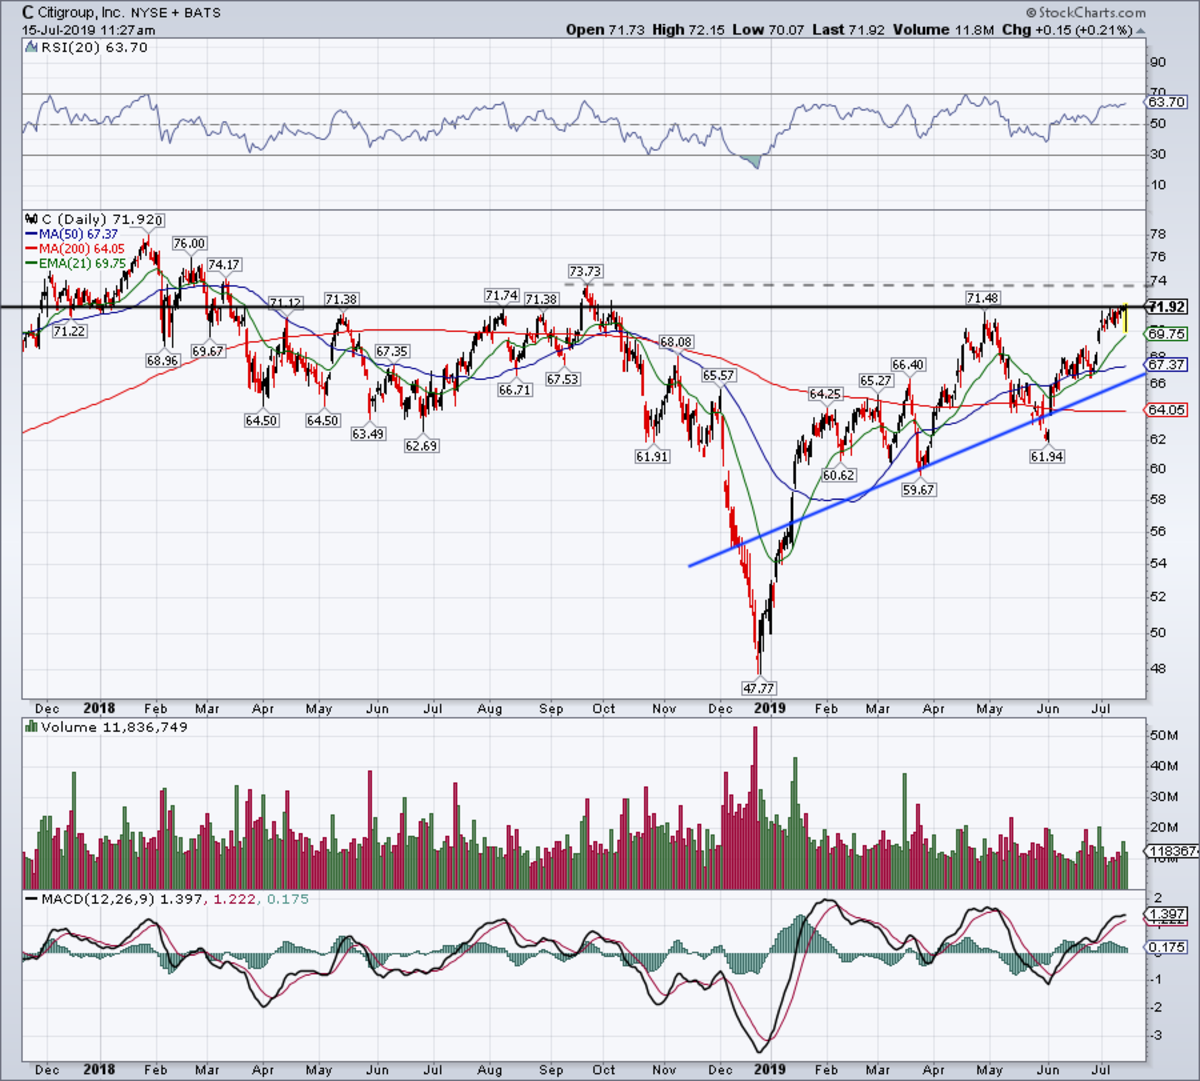 Daily chart of Citigroup stock.